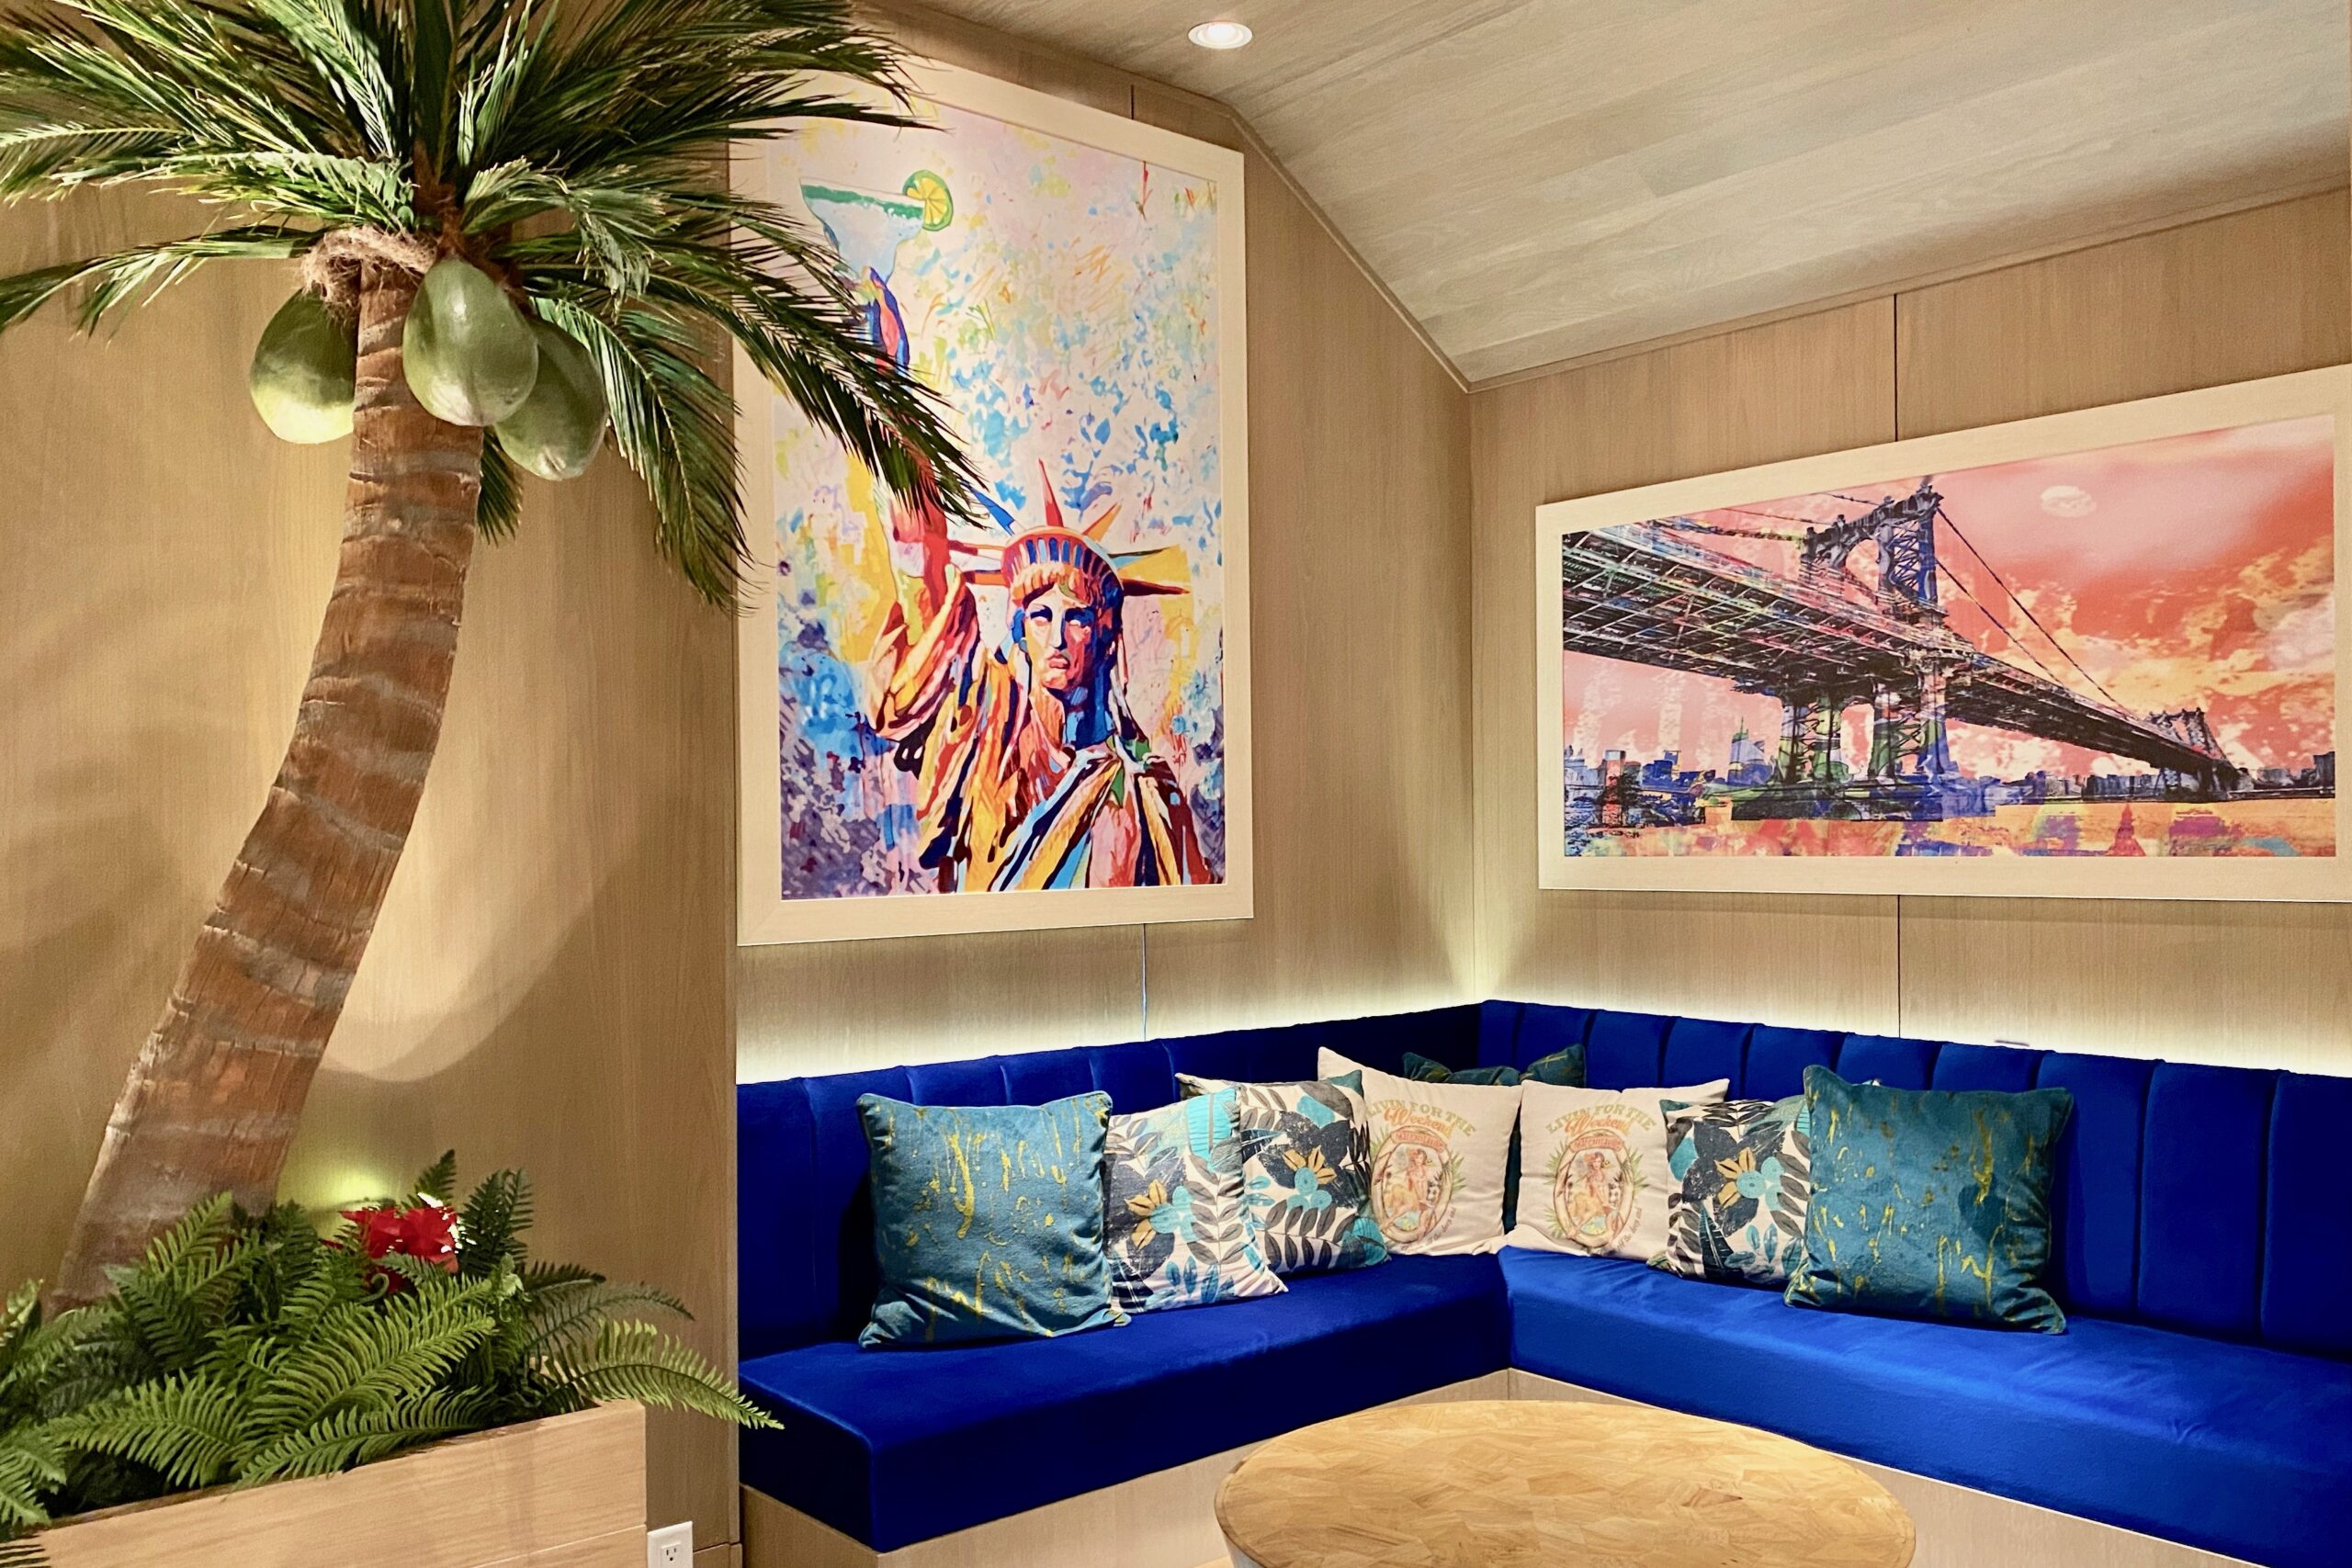 Tropical interior at the new Margaritaville Times Square resort in NYC